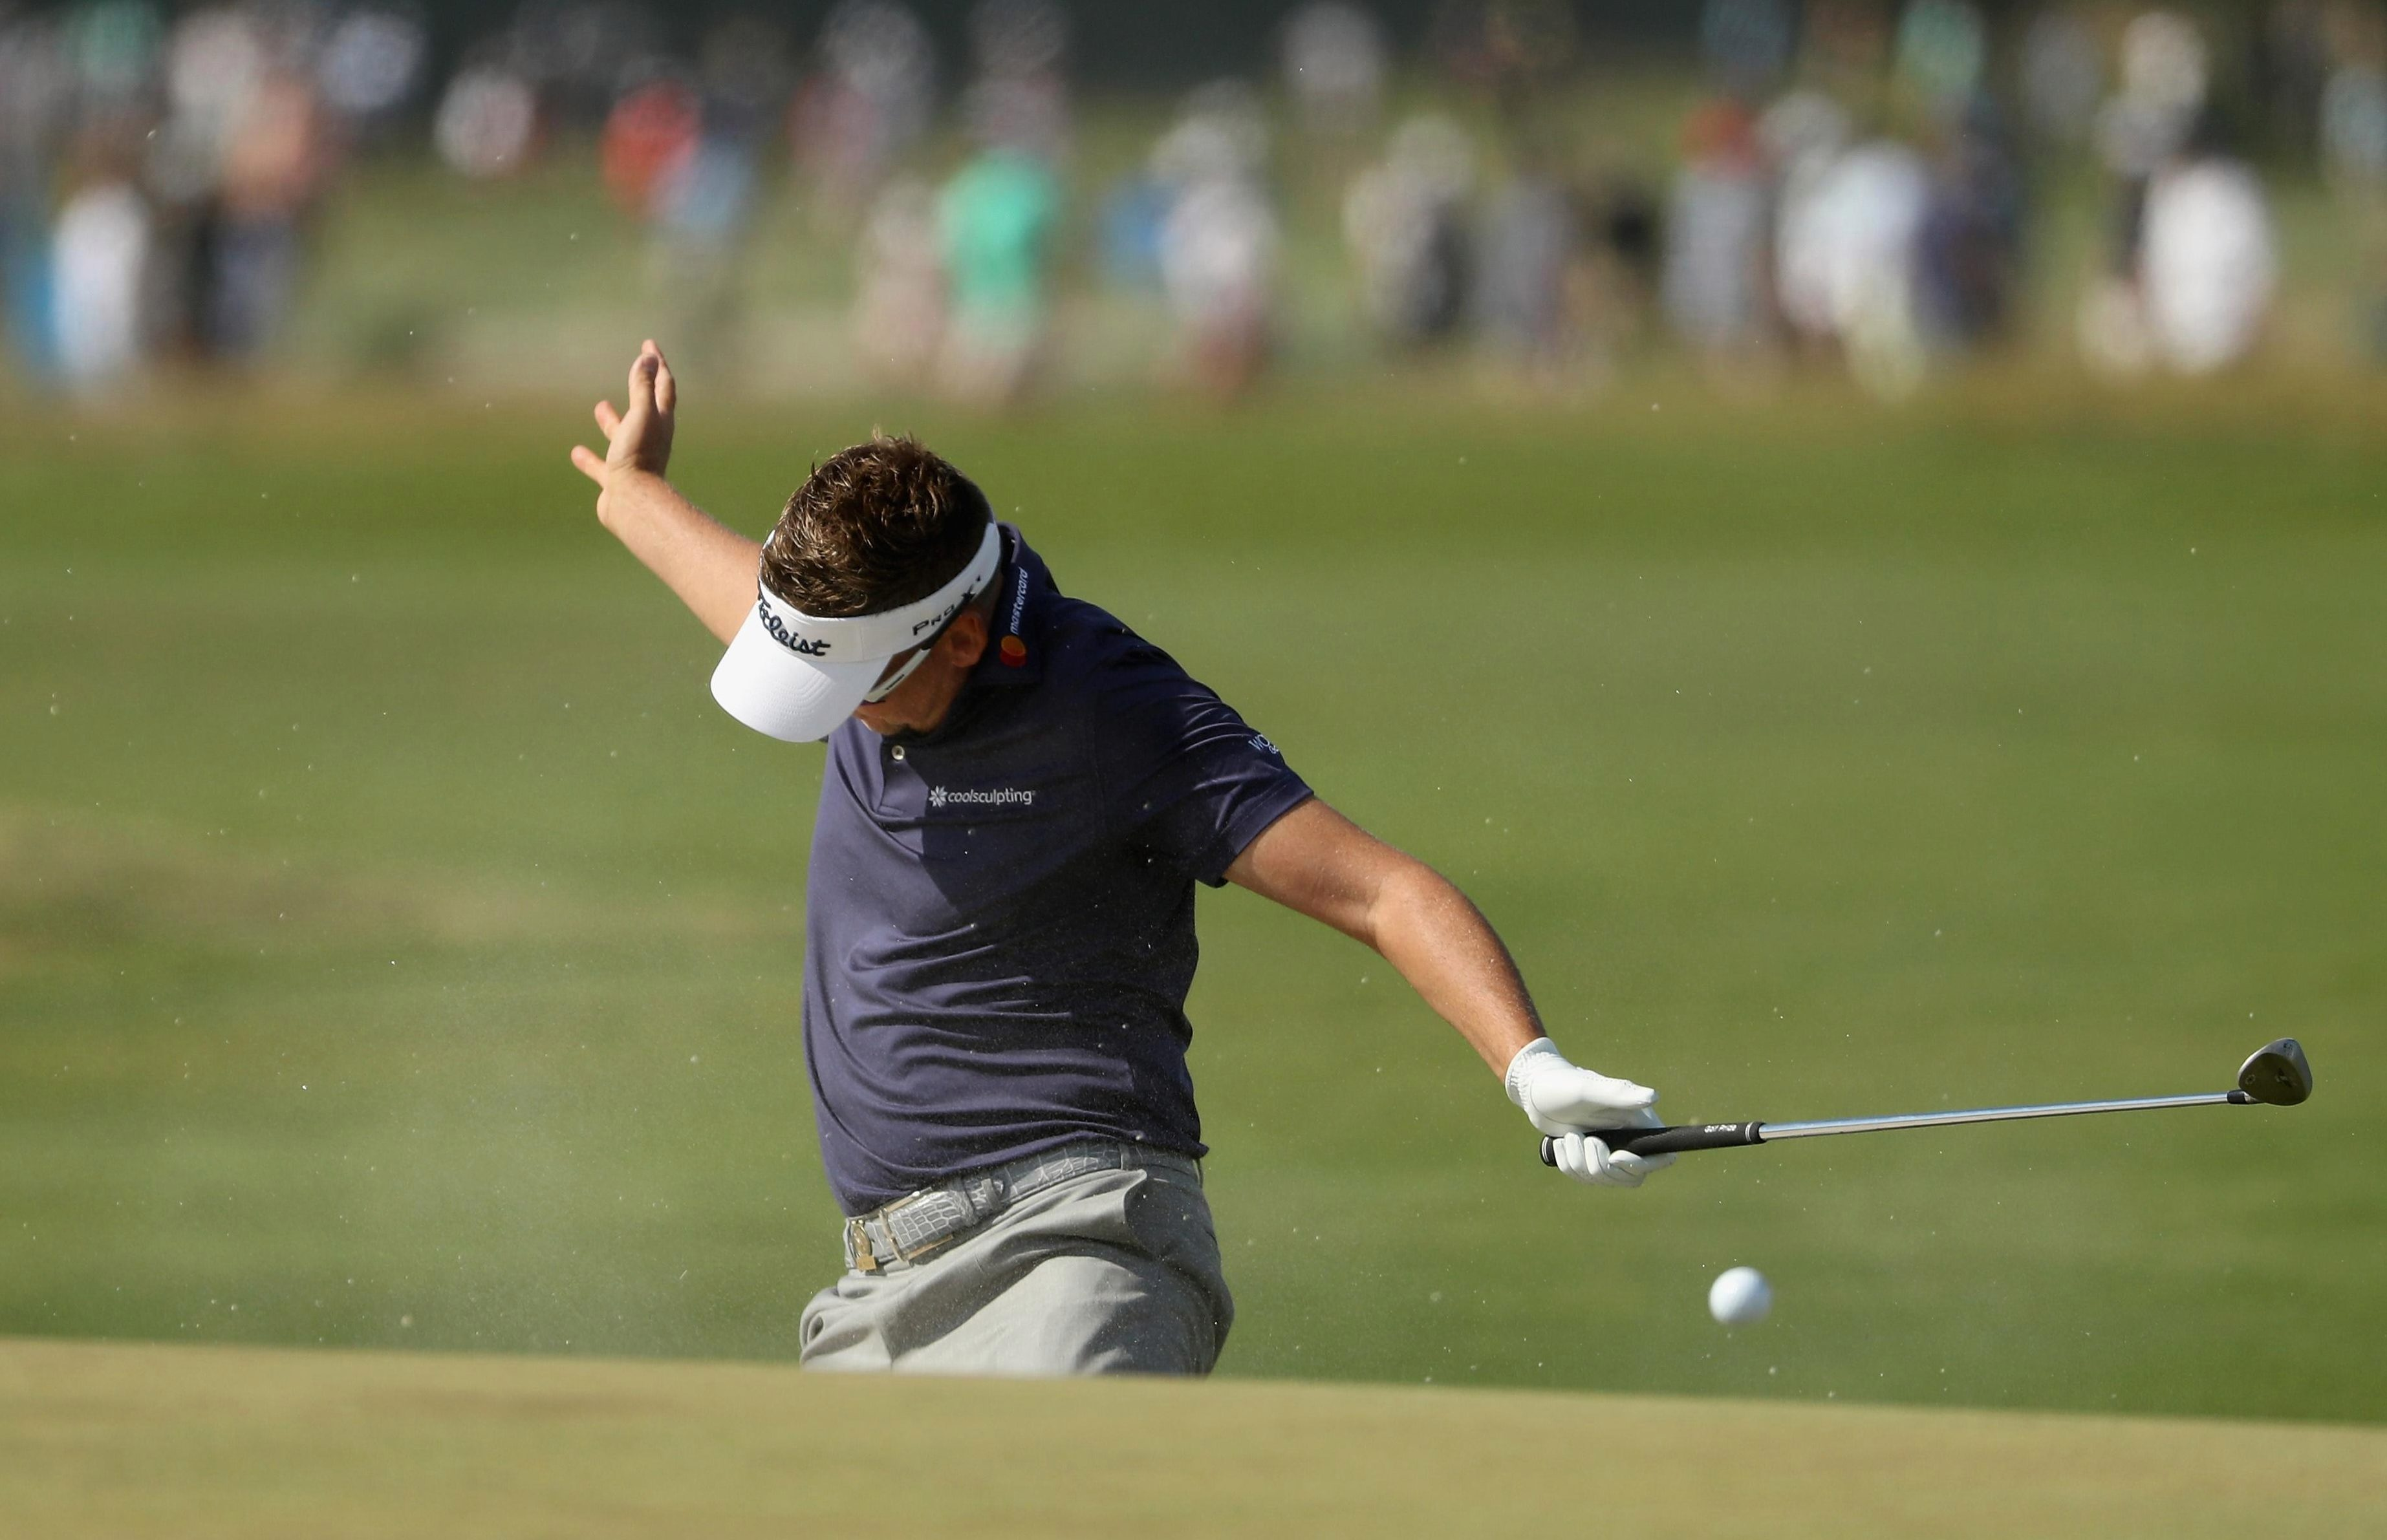 Ian Poulter claims he has was verbally abused at US Open